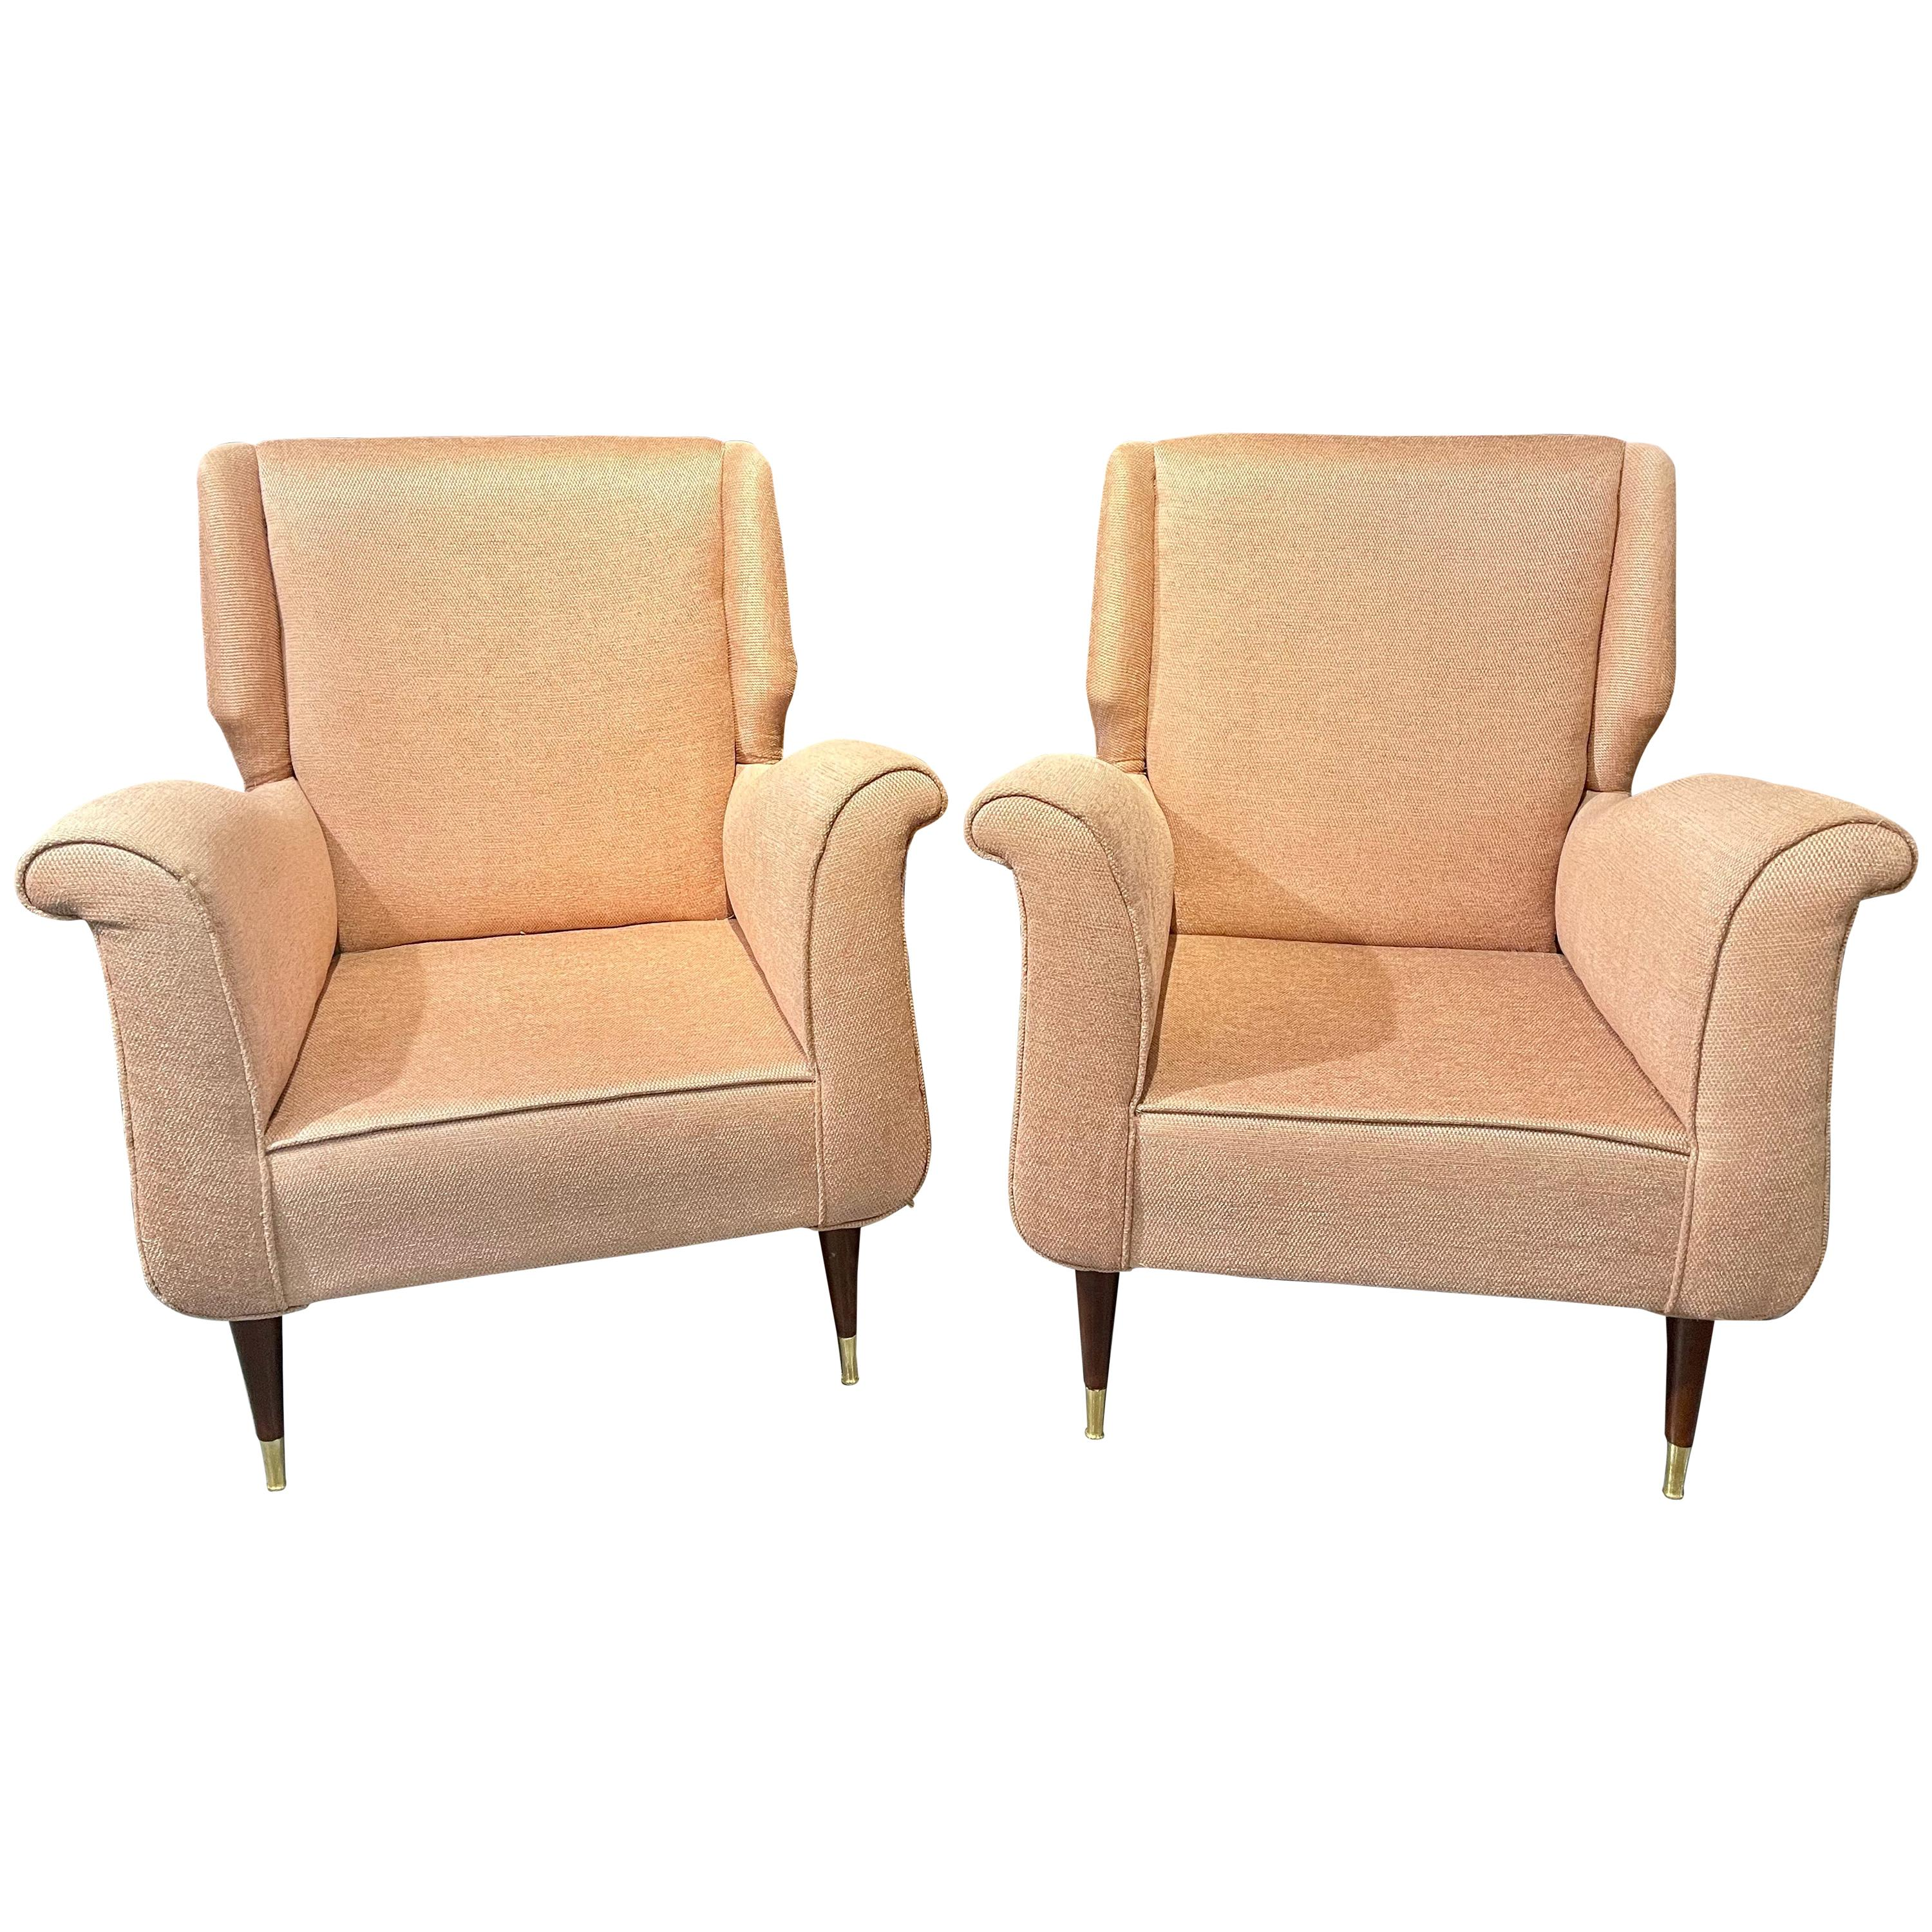 Pair of Mid-Century Modern Gio Ponti Style Armchairs / Wingback Chairs